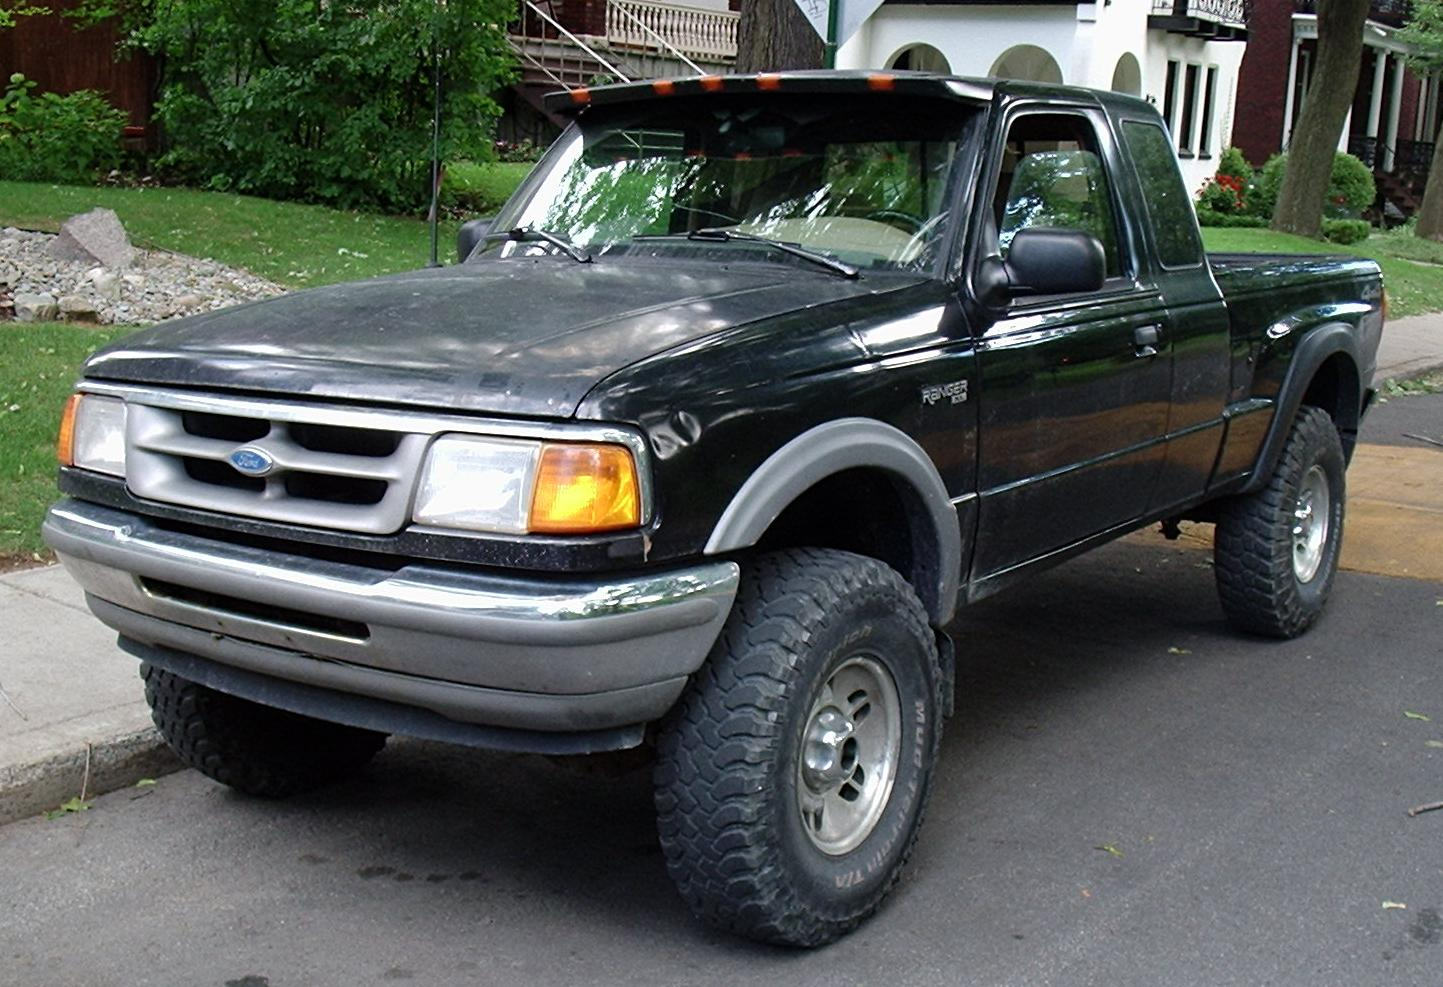 File:Ford Ranger XL Ext. Cab With Mazda B-Series Trunklid --